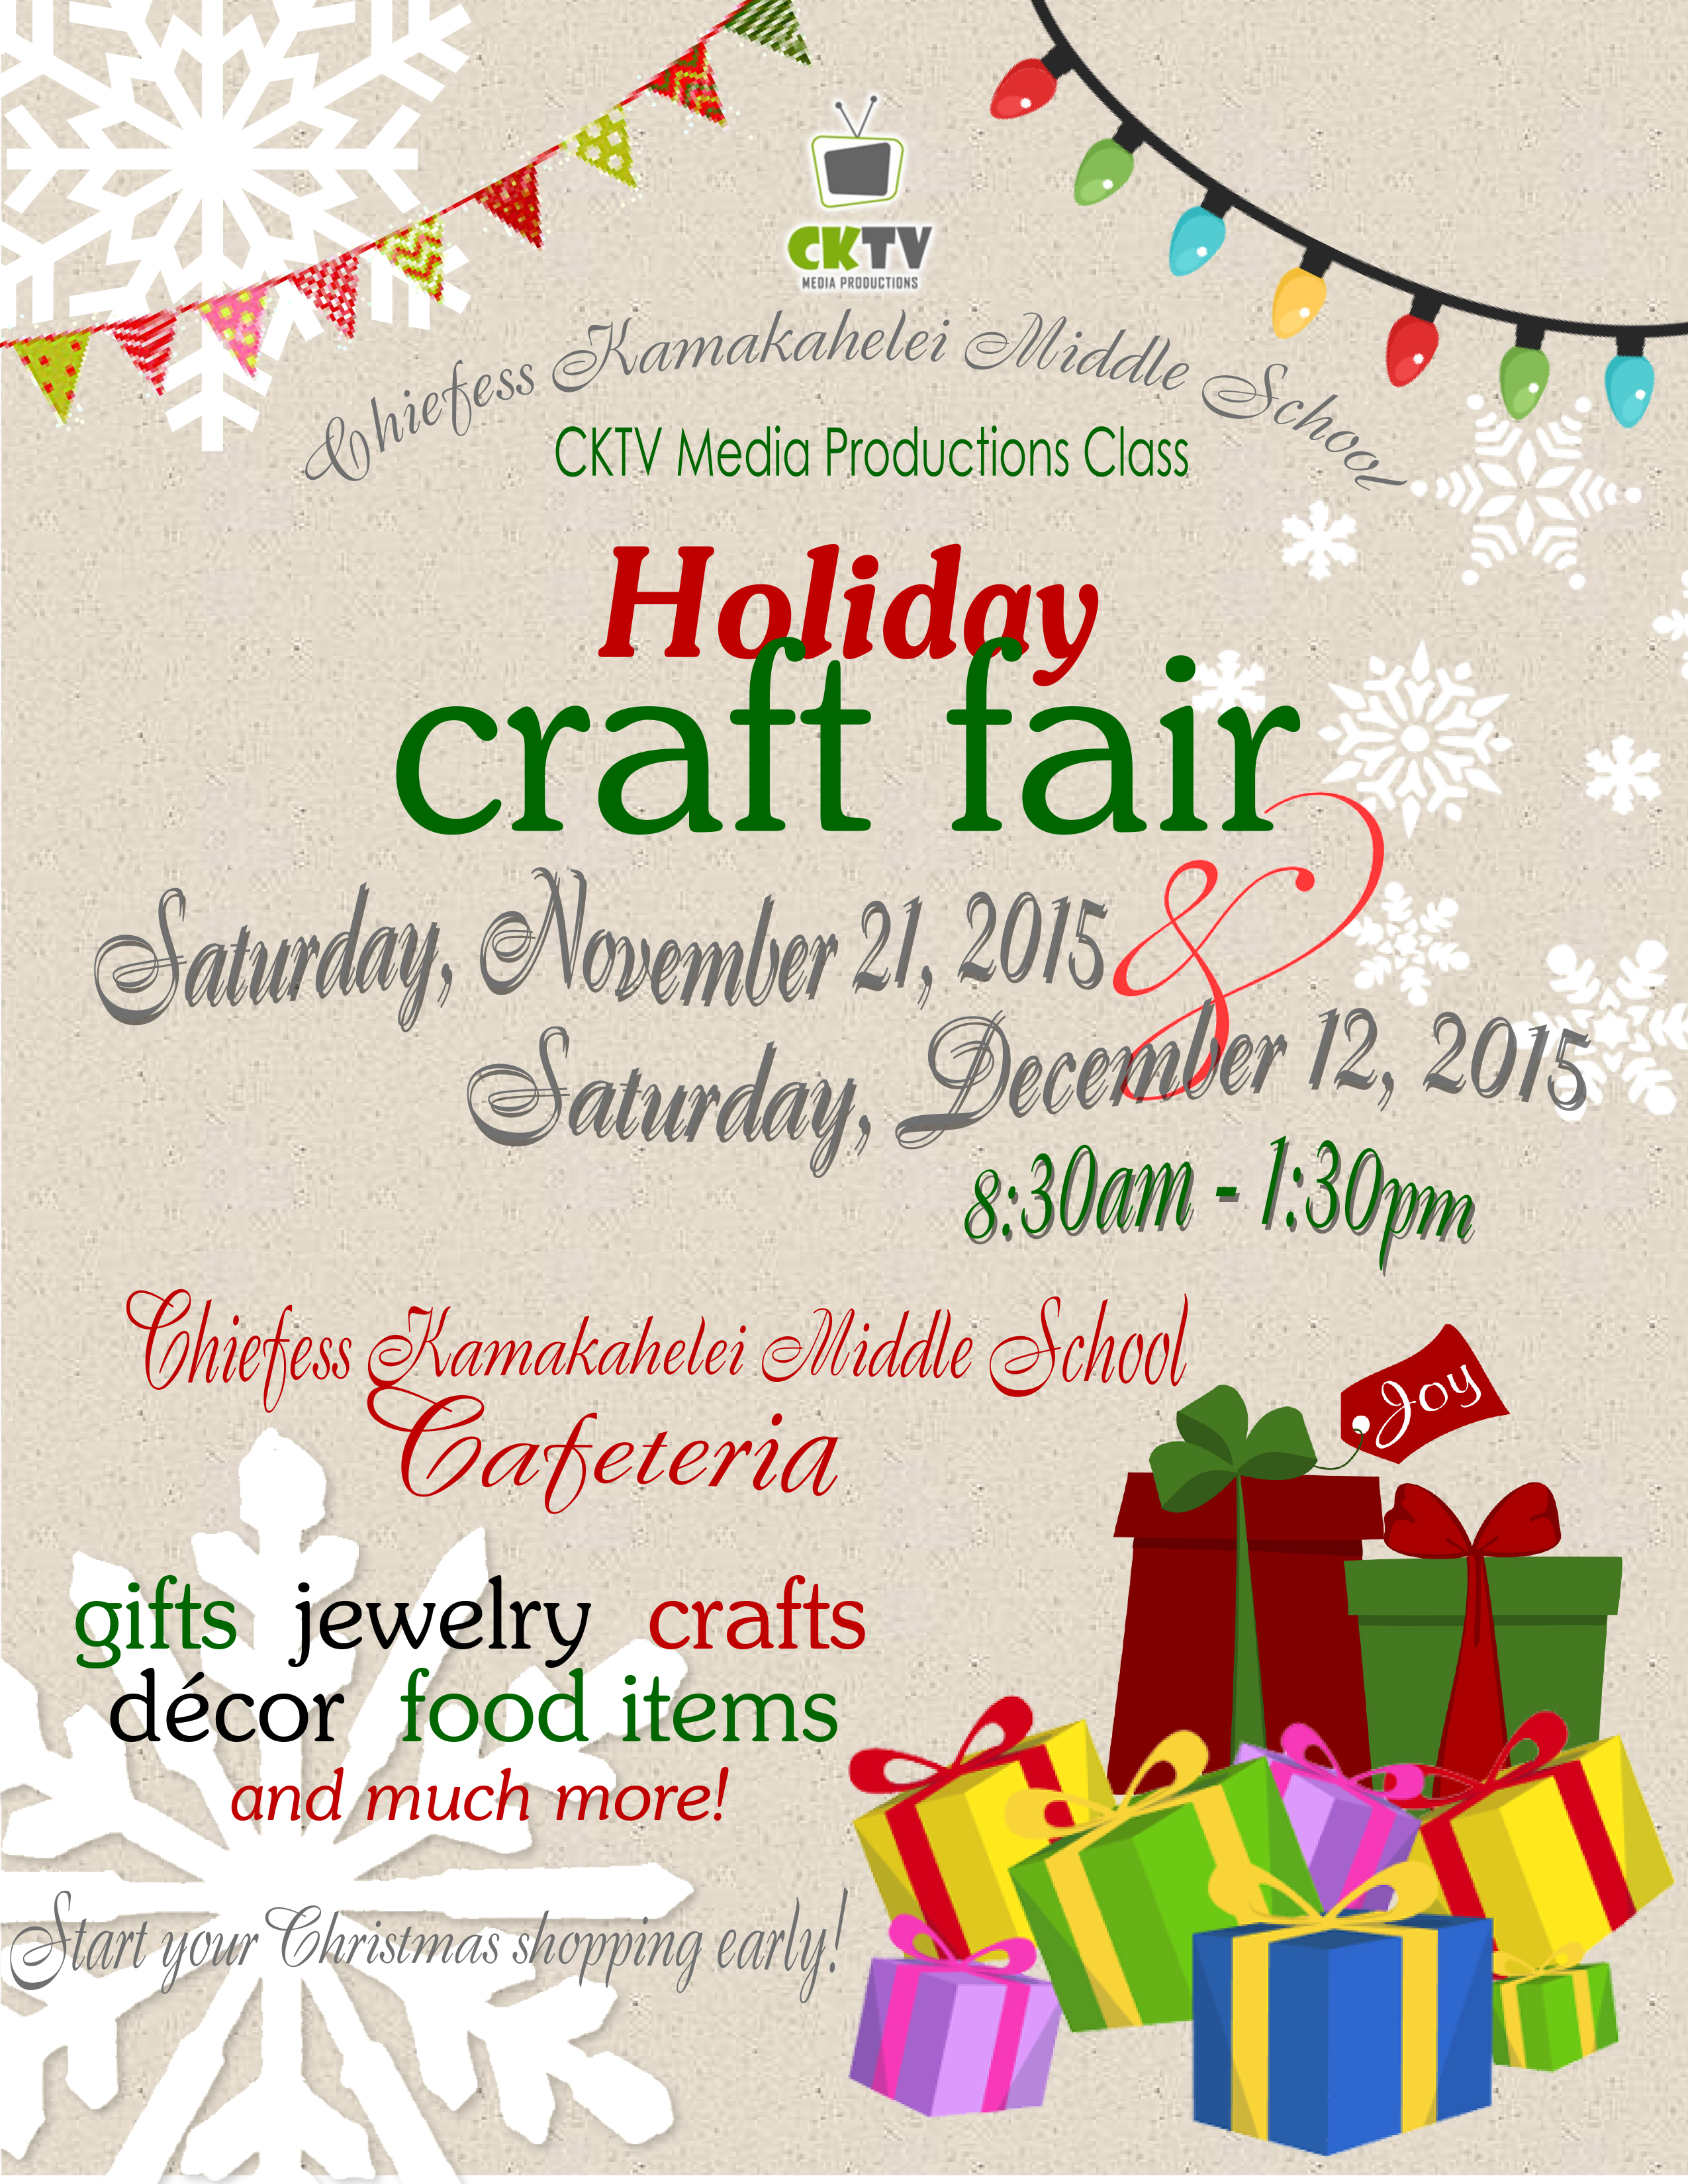 How to Shop at Holiday Craft Fairs